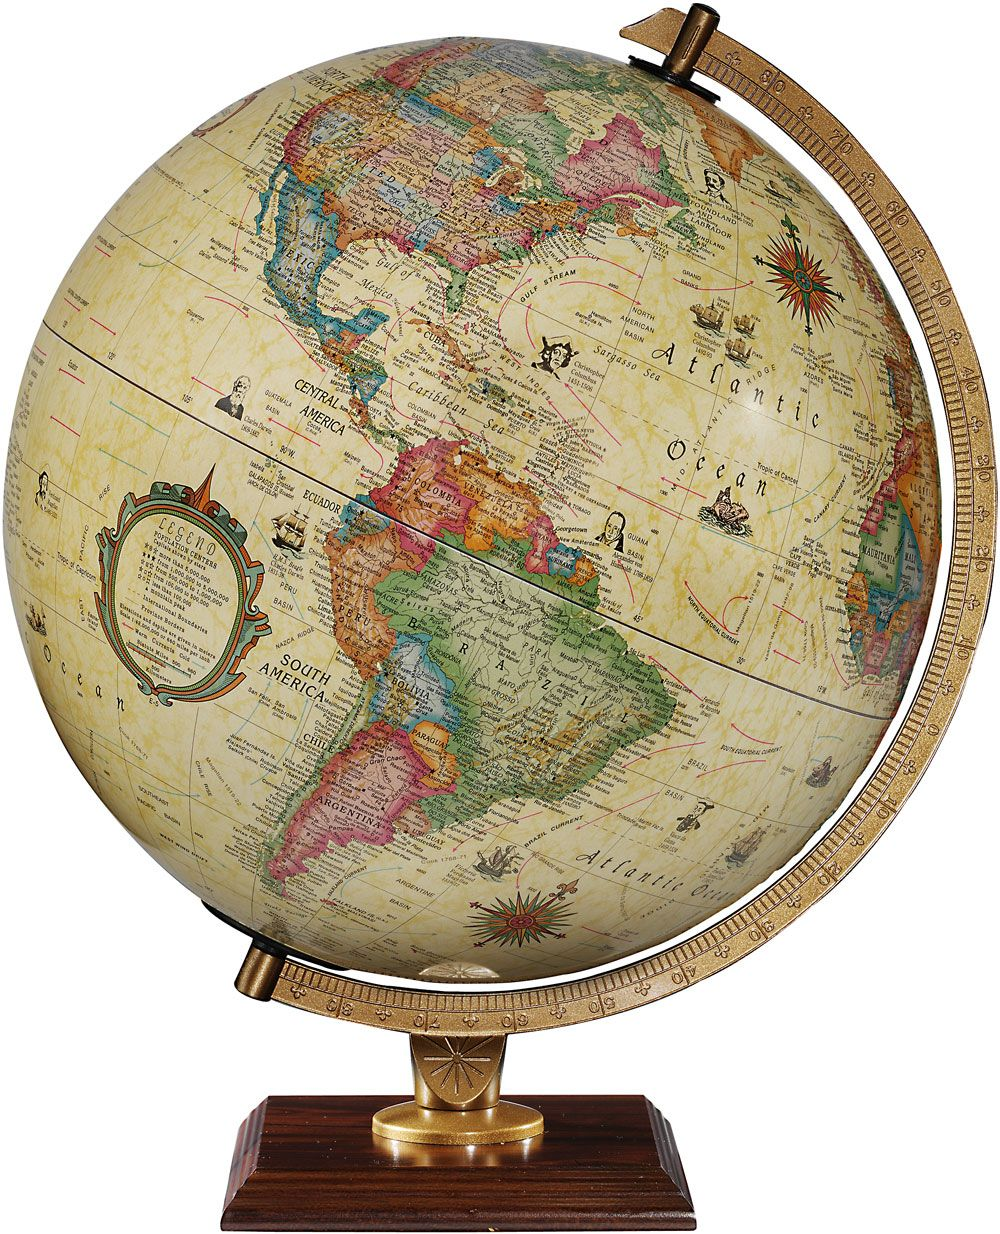 1-World Globes - The Carlyle: This globe is pretty awesome! It's raised - 1-World Globes - The Carlyle: This Globe Is Pretty Awesome! It's